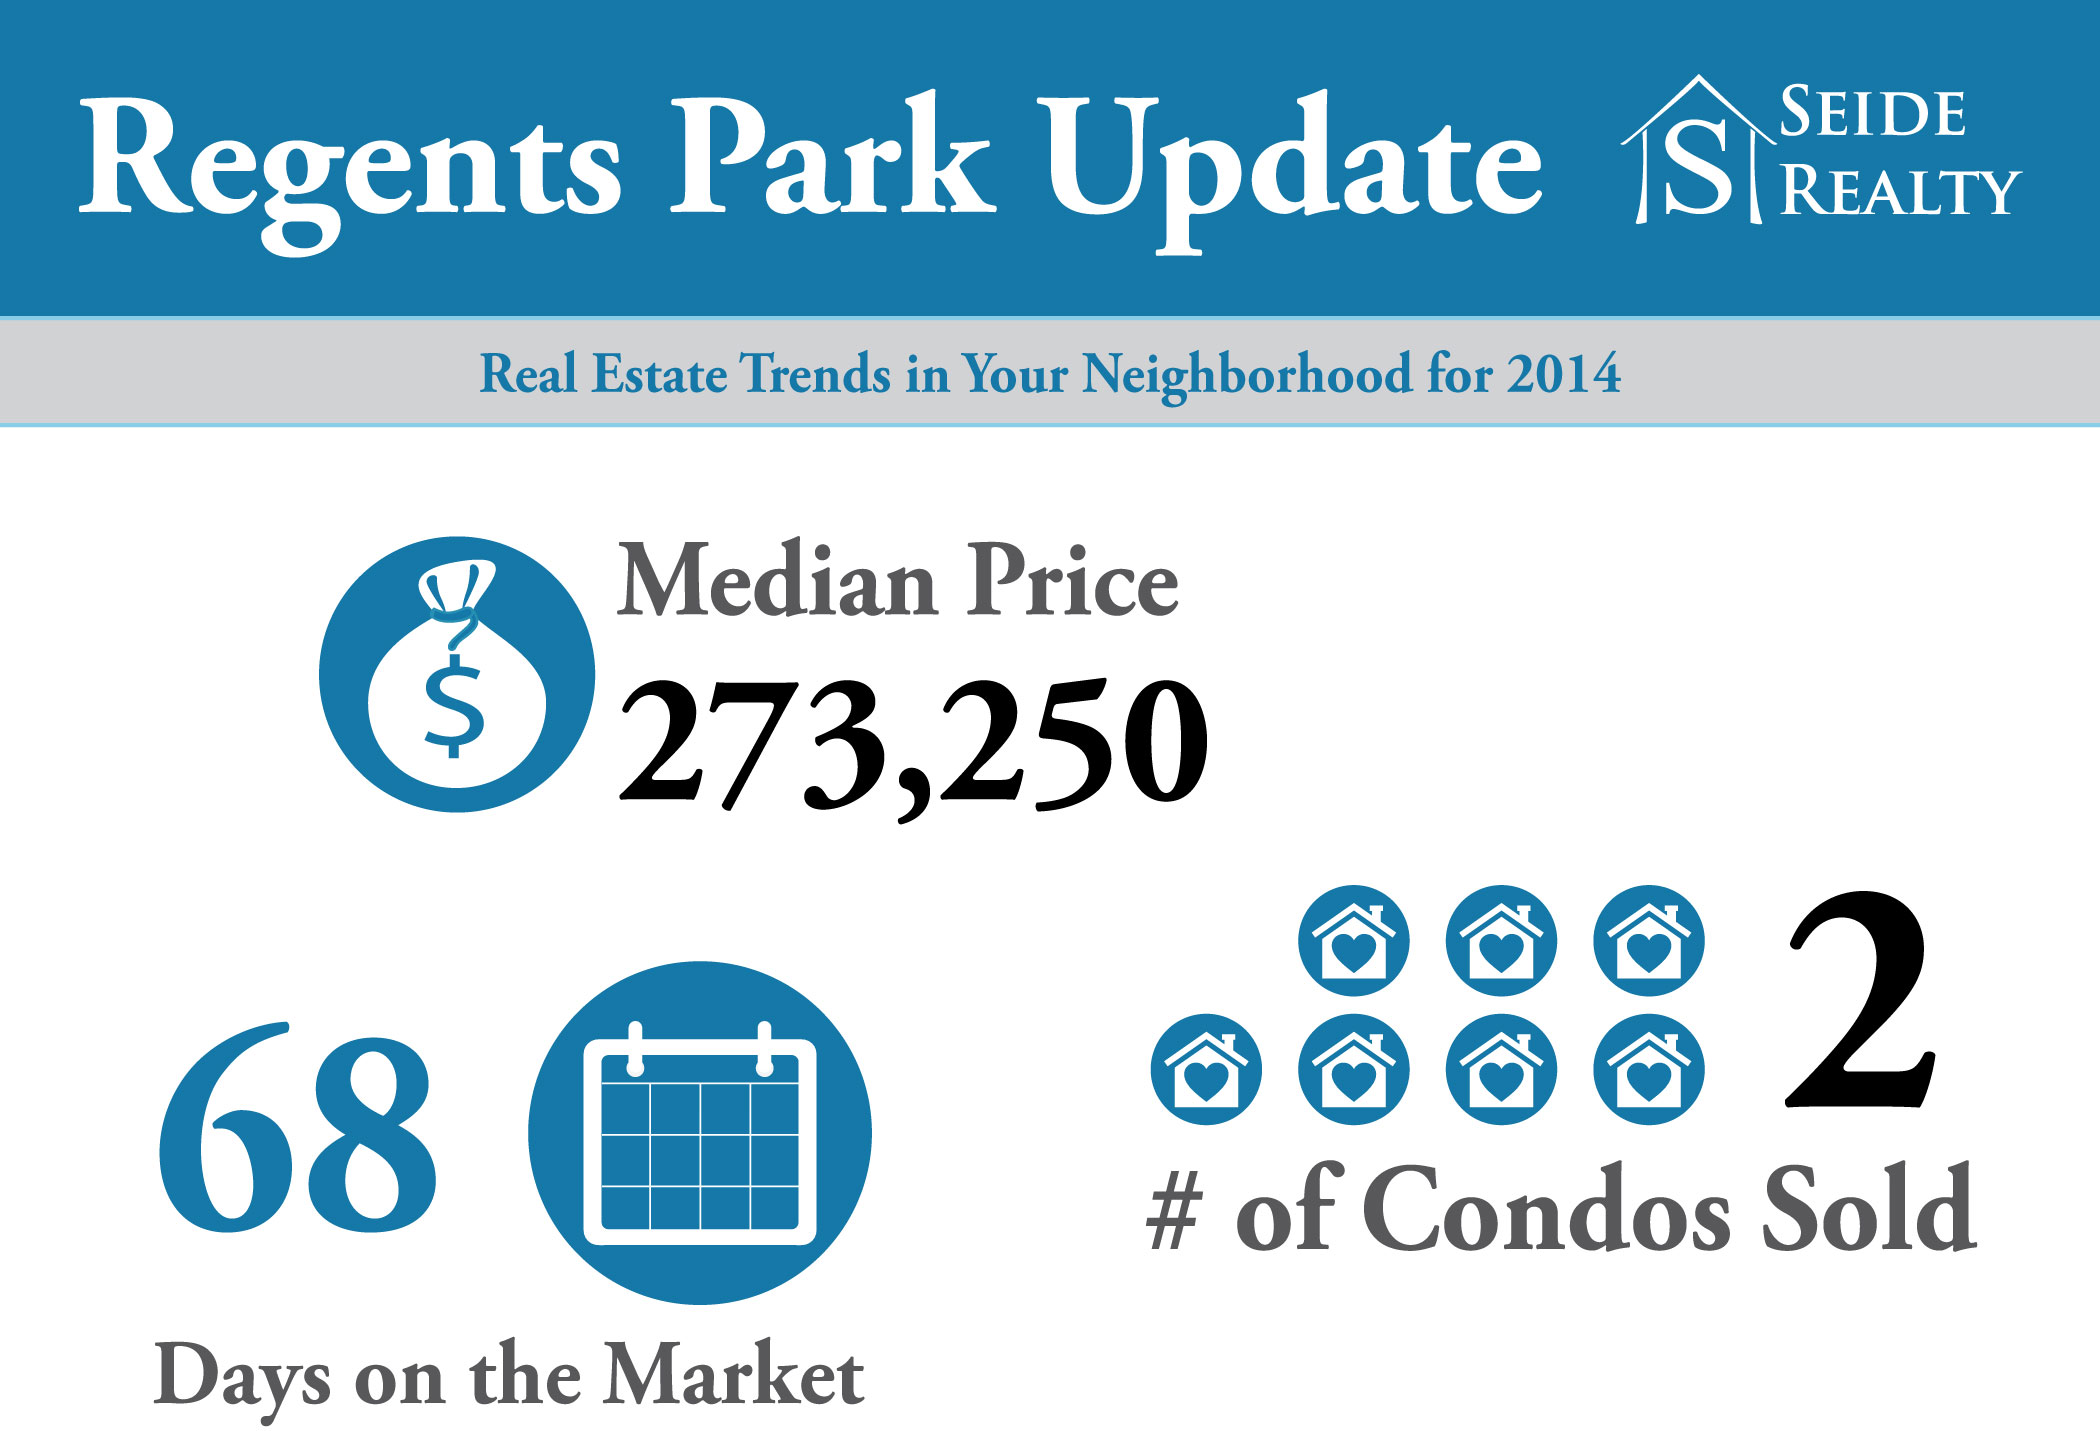 Real Estate Trends in Regents Park